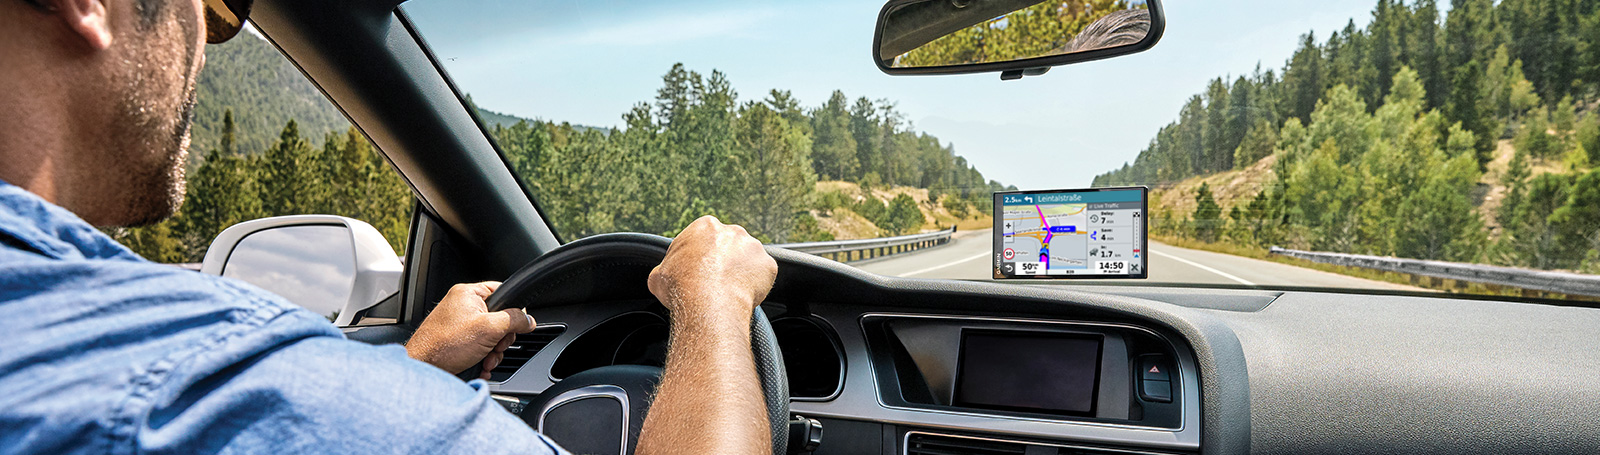 Full-featured GPS navigation systems for your car that take the doubt out of driving.